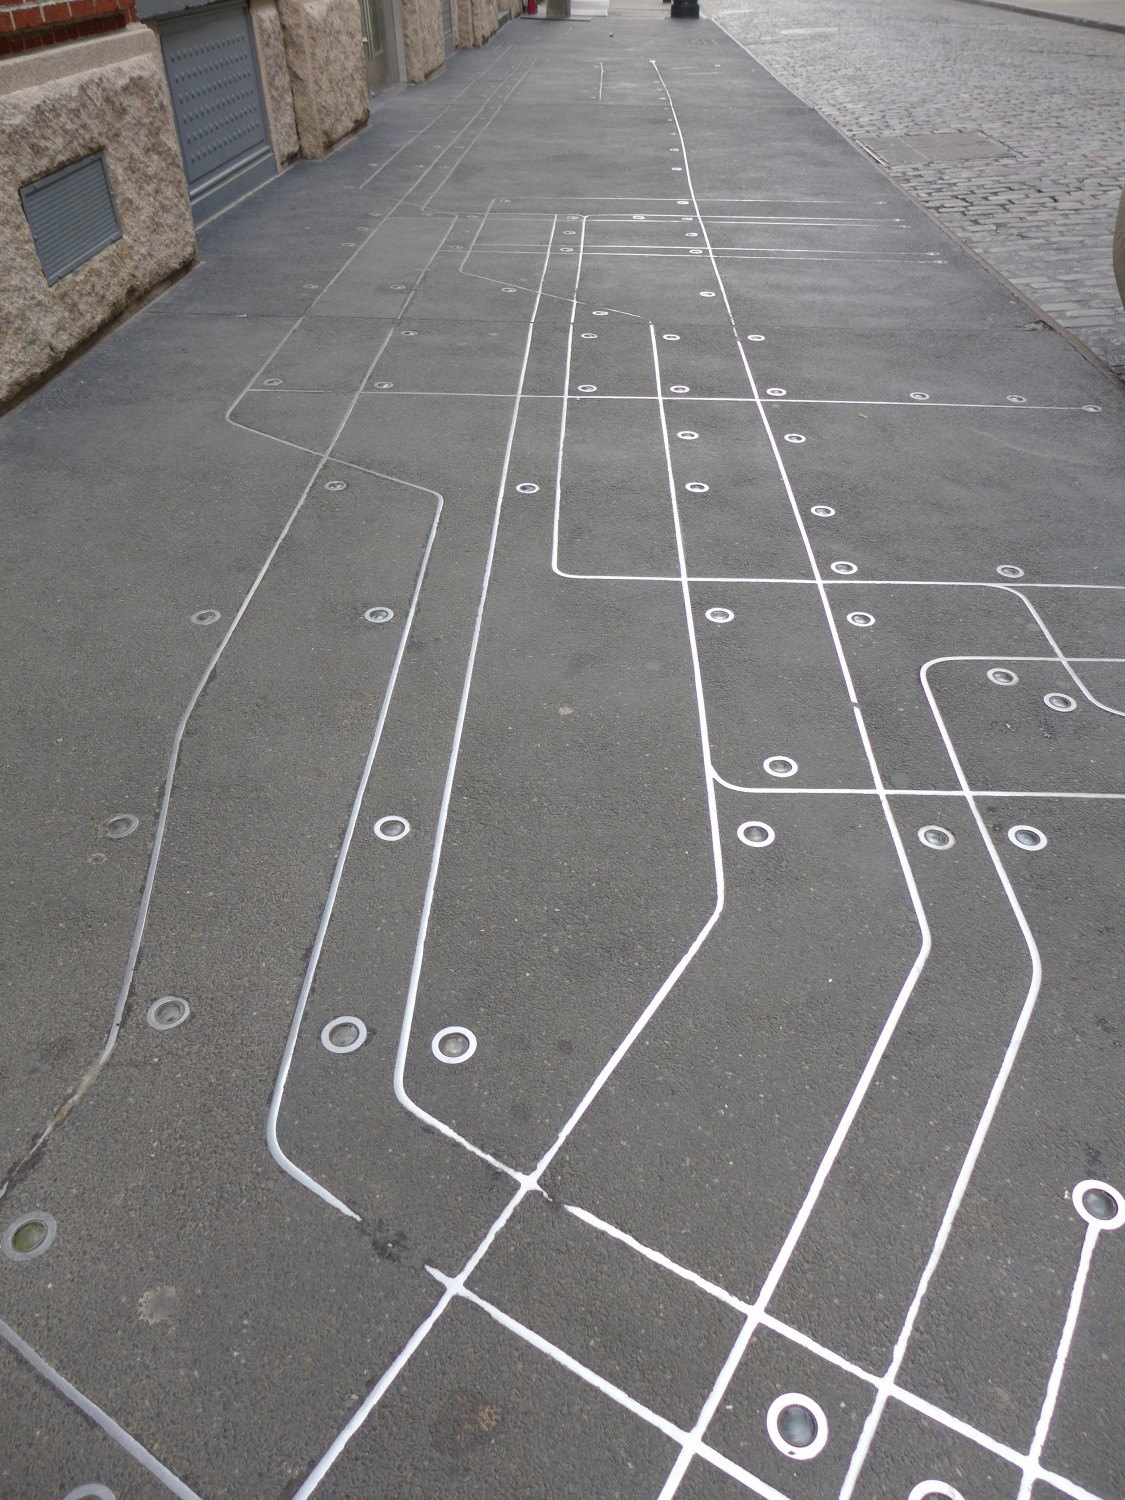 Subway Map Floating On A New York Sidewalk.Saw A Subway Map Embedded In The Sidewalk Today S The Day I